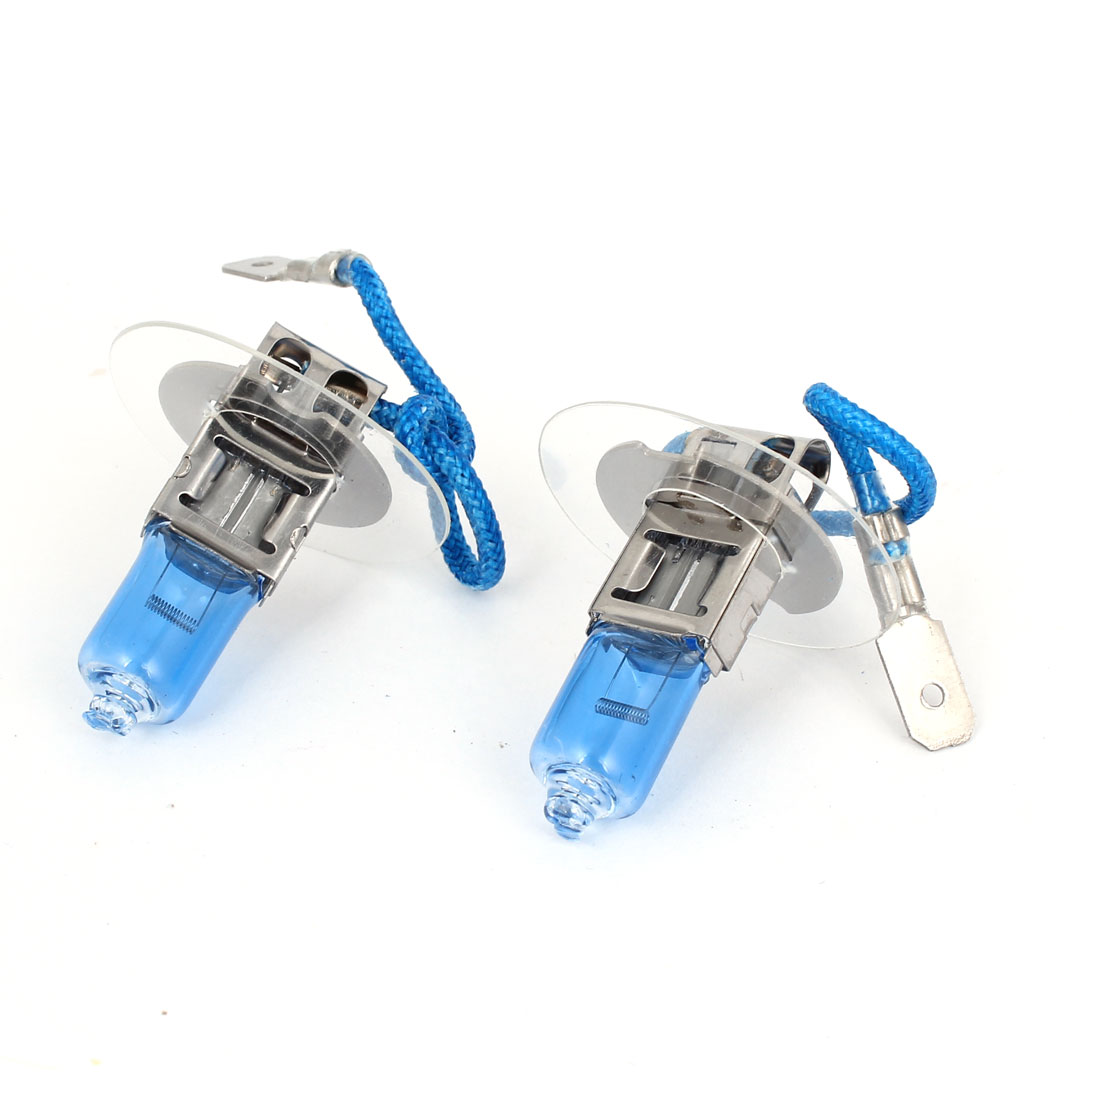 Pair H3 100W White HOD Halogen DRL Driving Lamp Fog Light Bulb for Auto Car